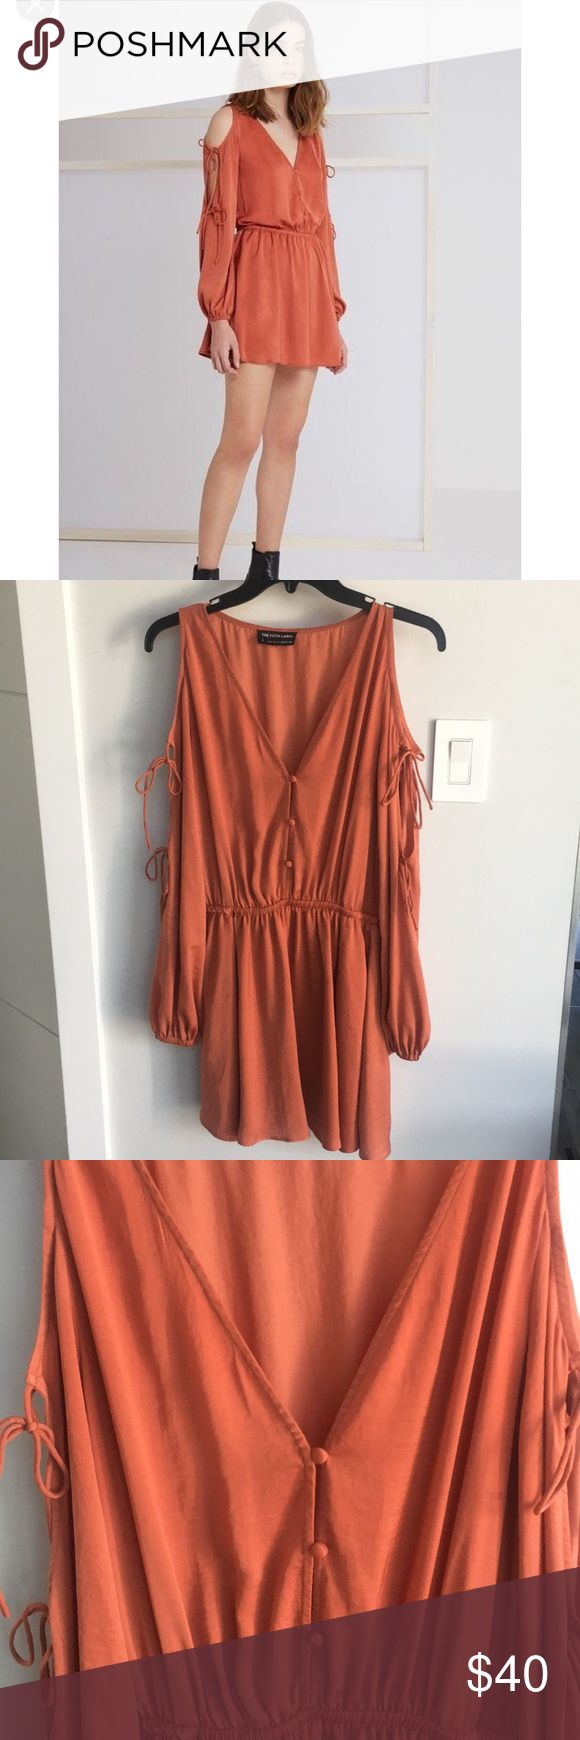 The Fifth Label Emergent Dress -Relaxed fit  -Elastic waist  -Rouleau loops and buttons down front bodice  -Full skirt  -Balloon style sleeve with split and rouleau ties  -Lightweight silky woven fabric Only worn once. The Fifth Label Dresses Mini